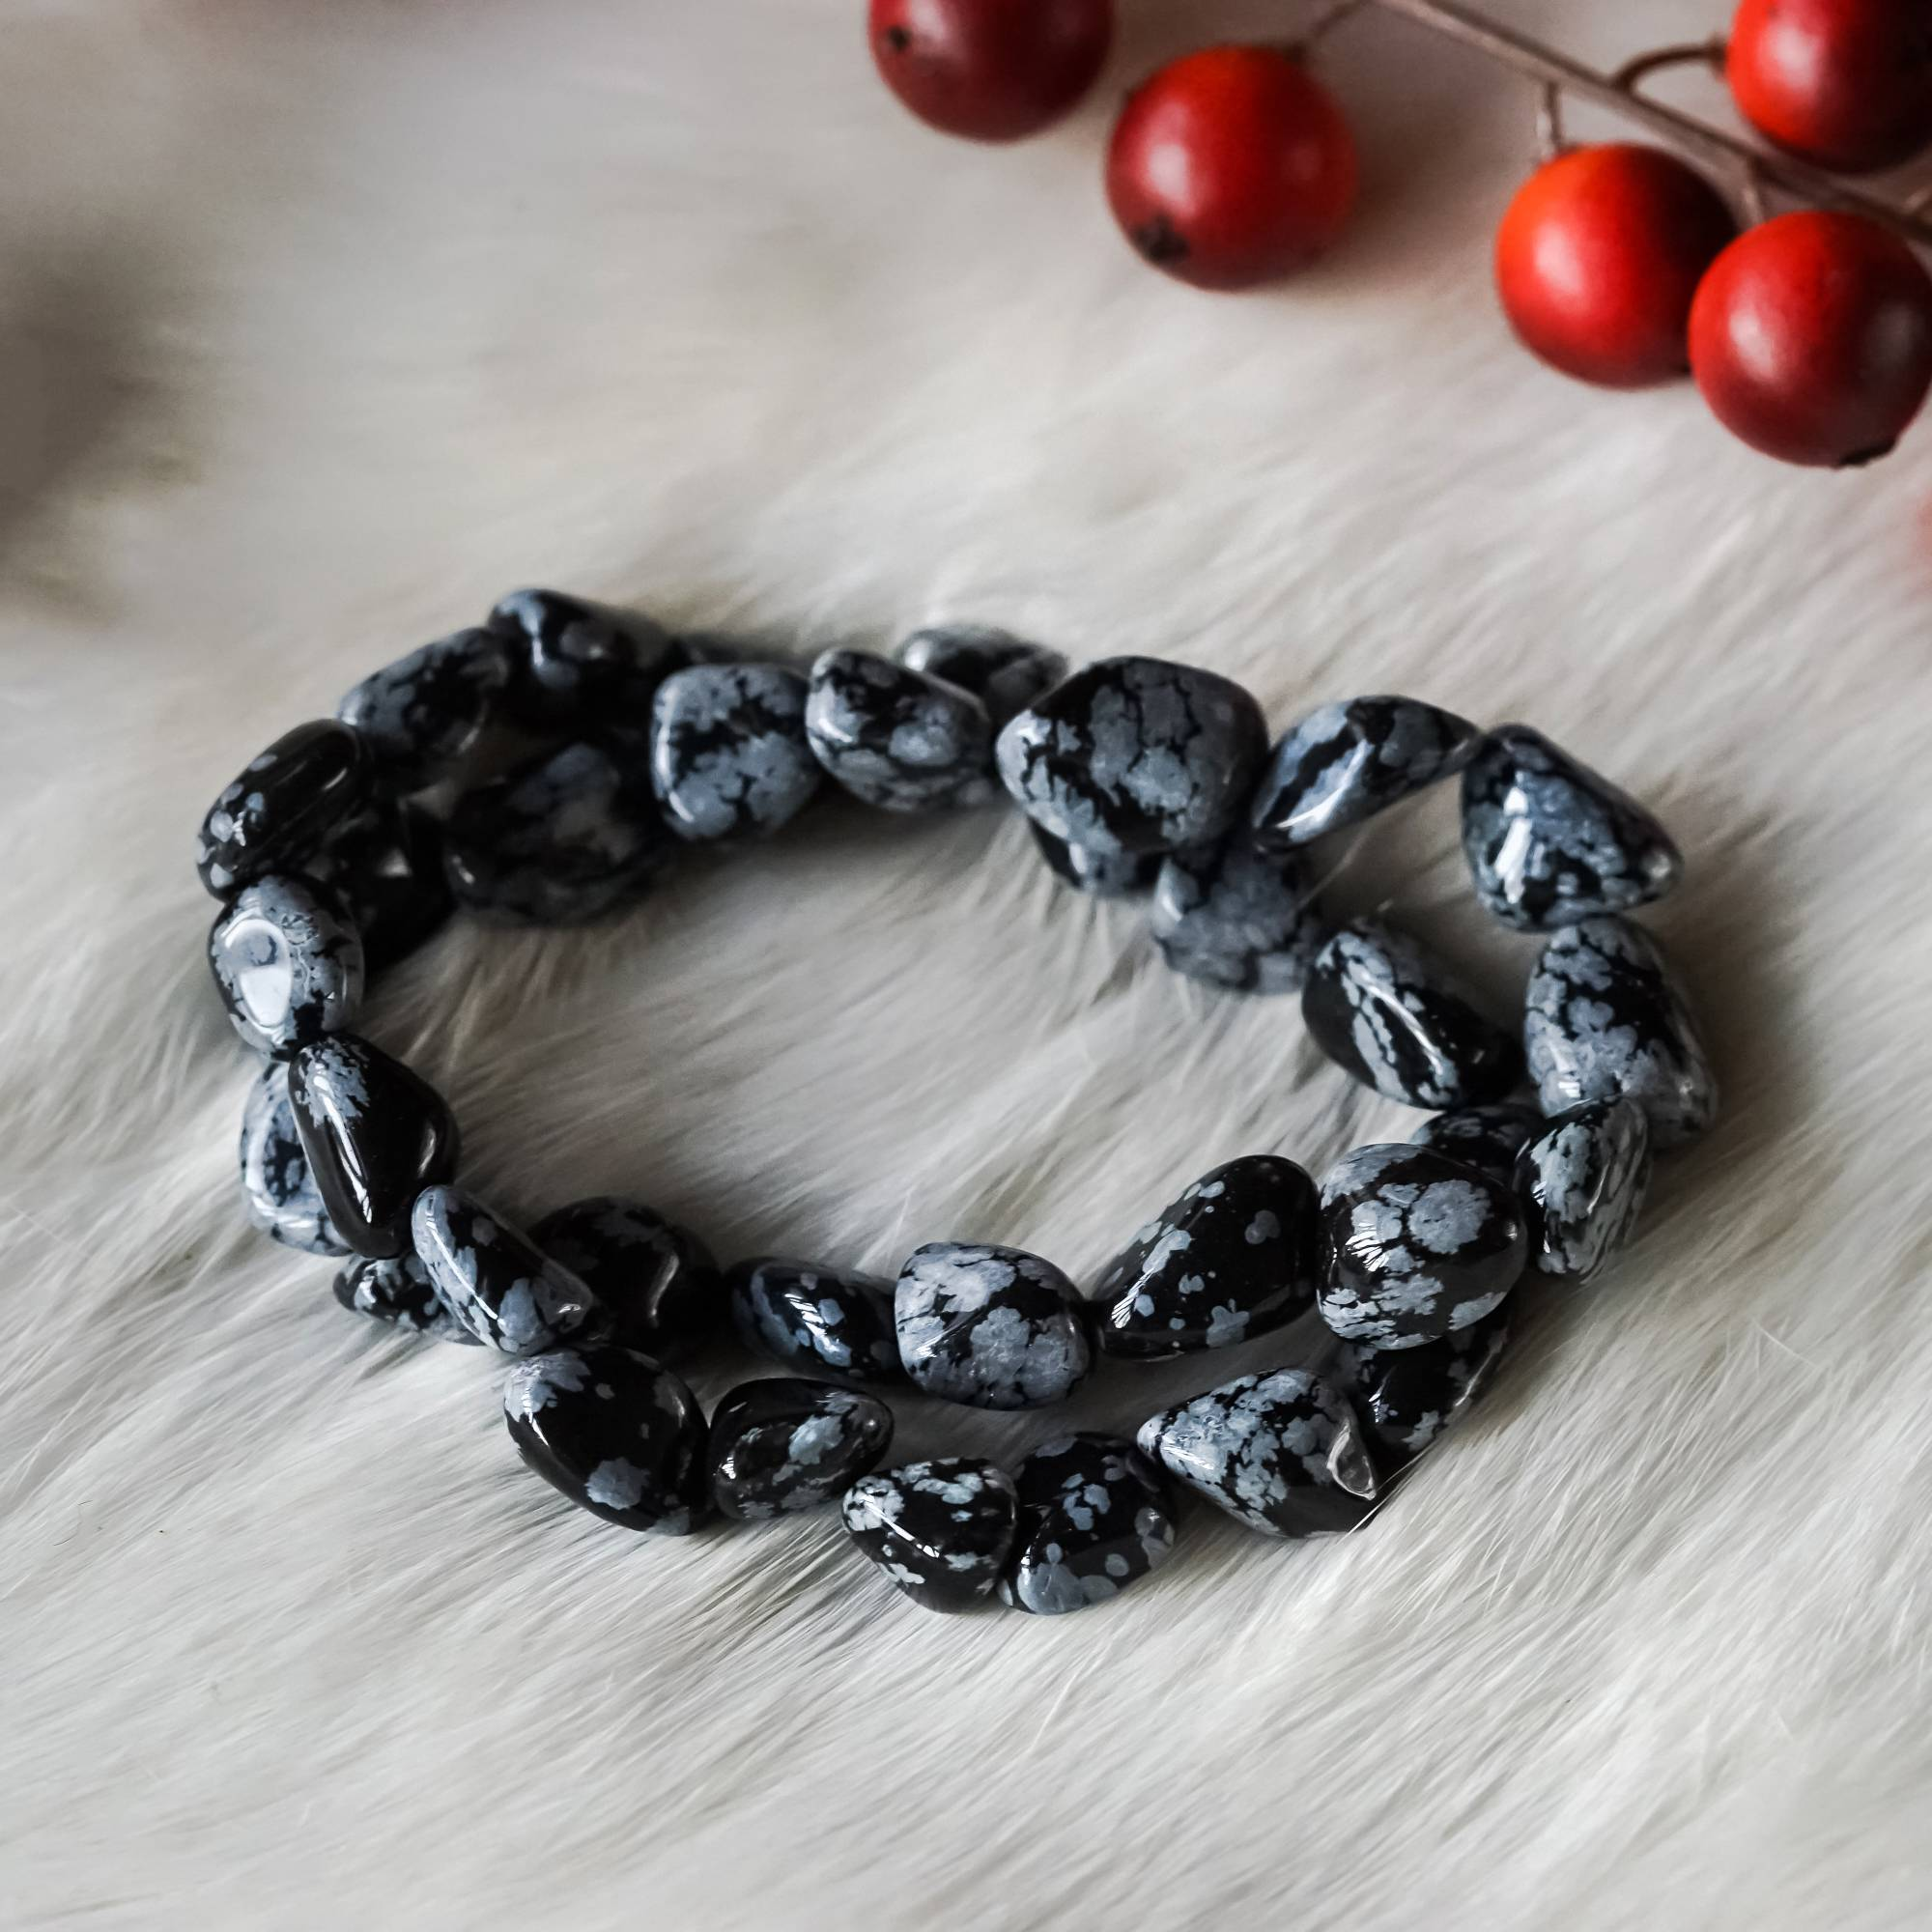 Snowflake Obsidian Bracelets For Revelation And Shadow Integration